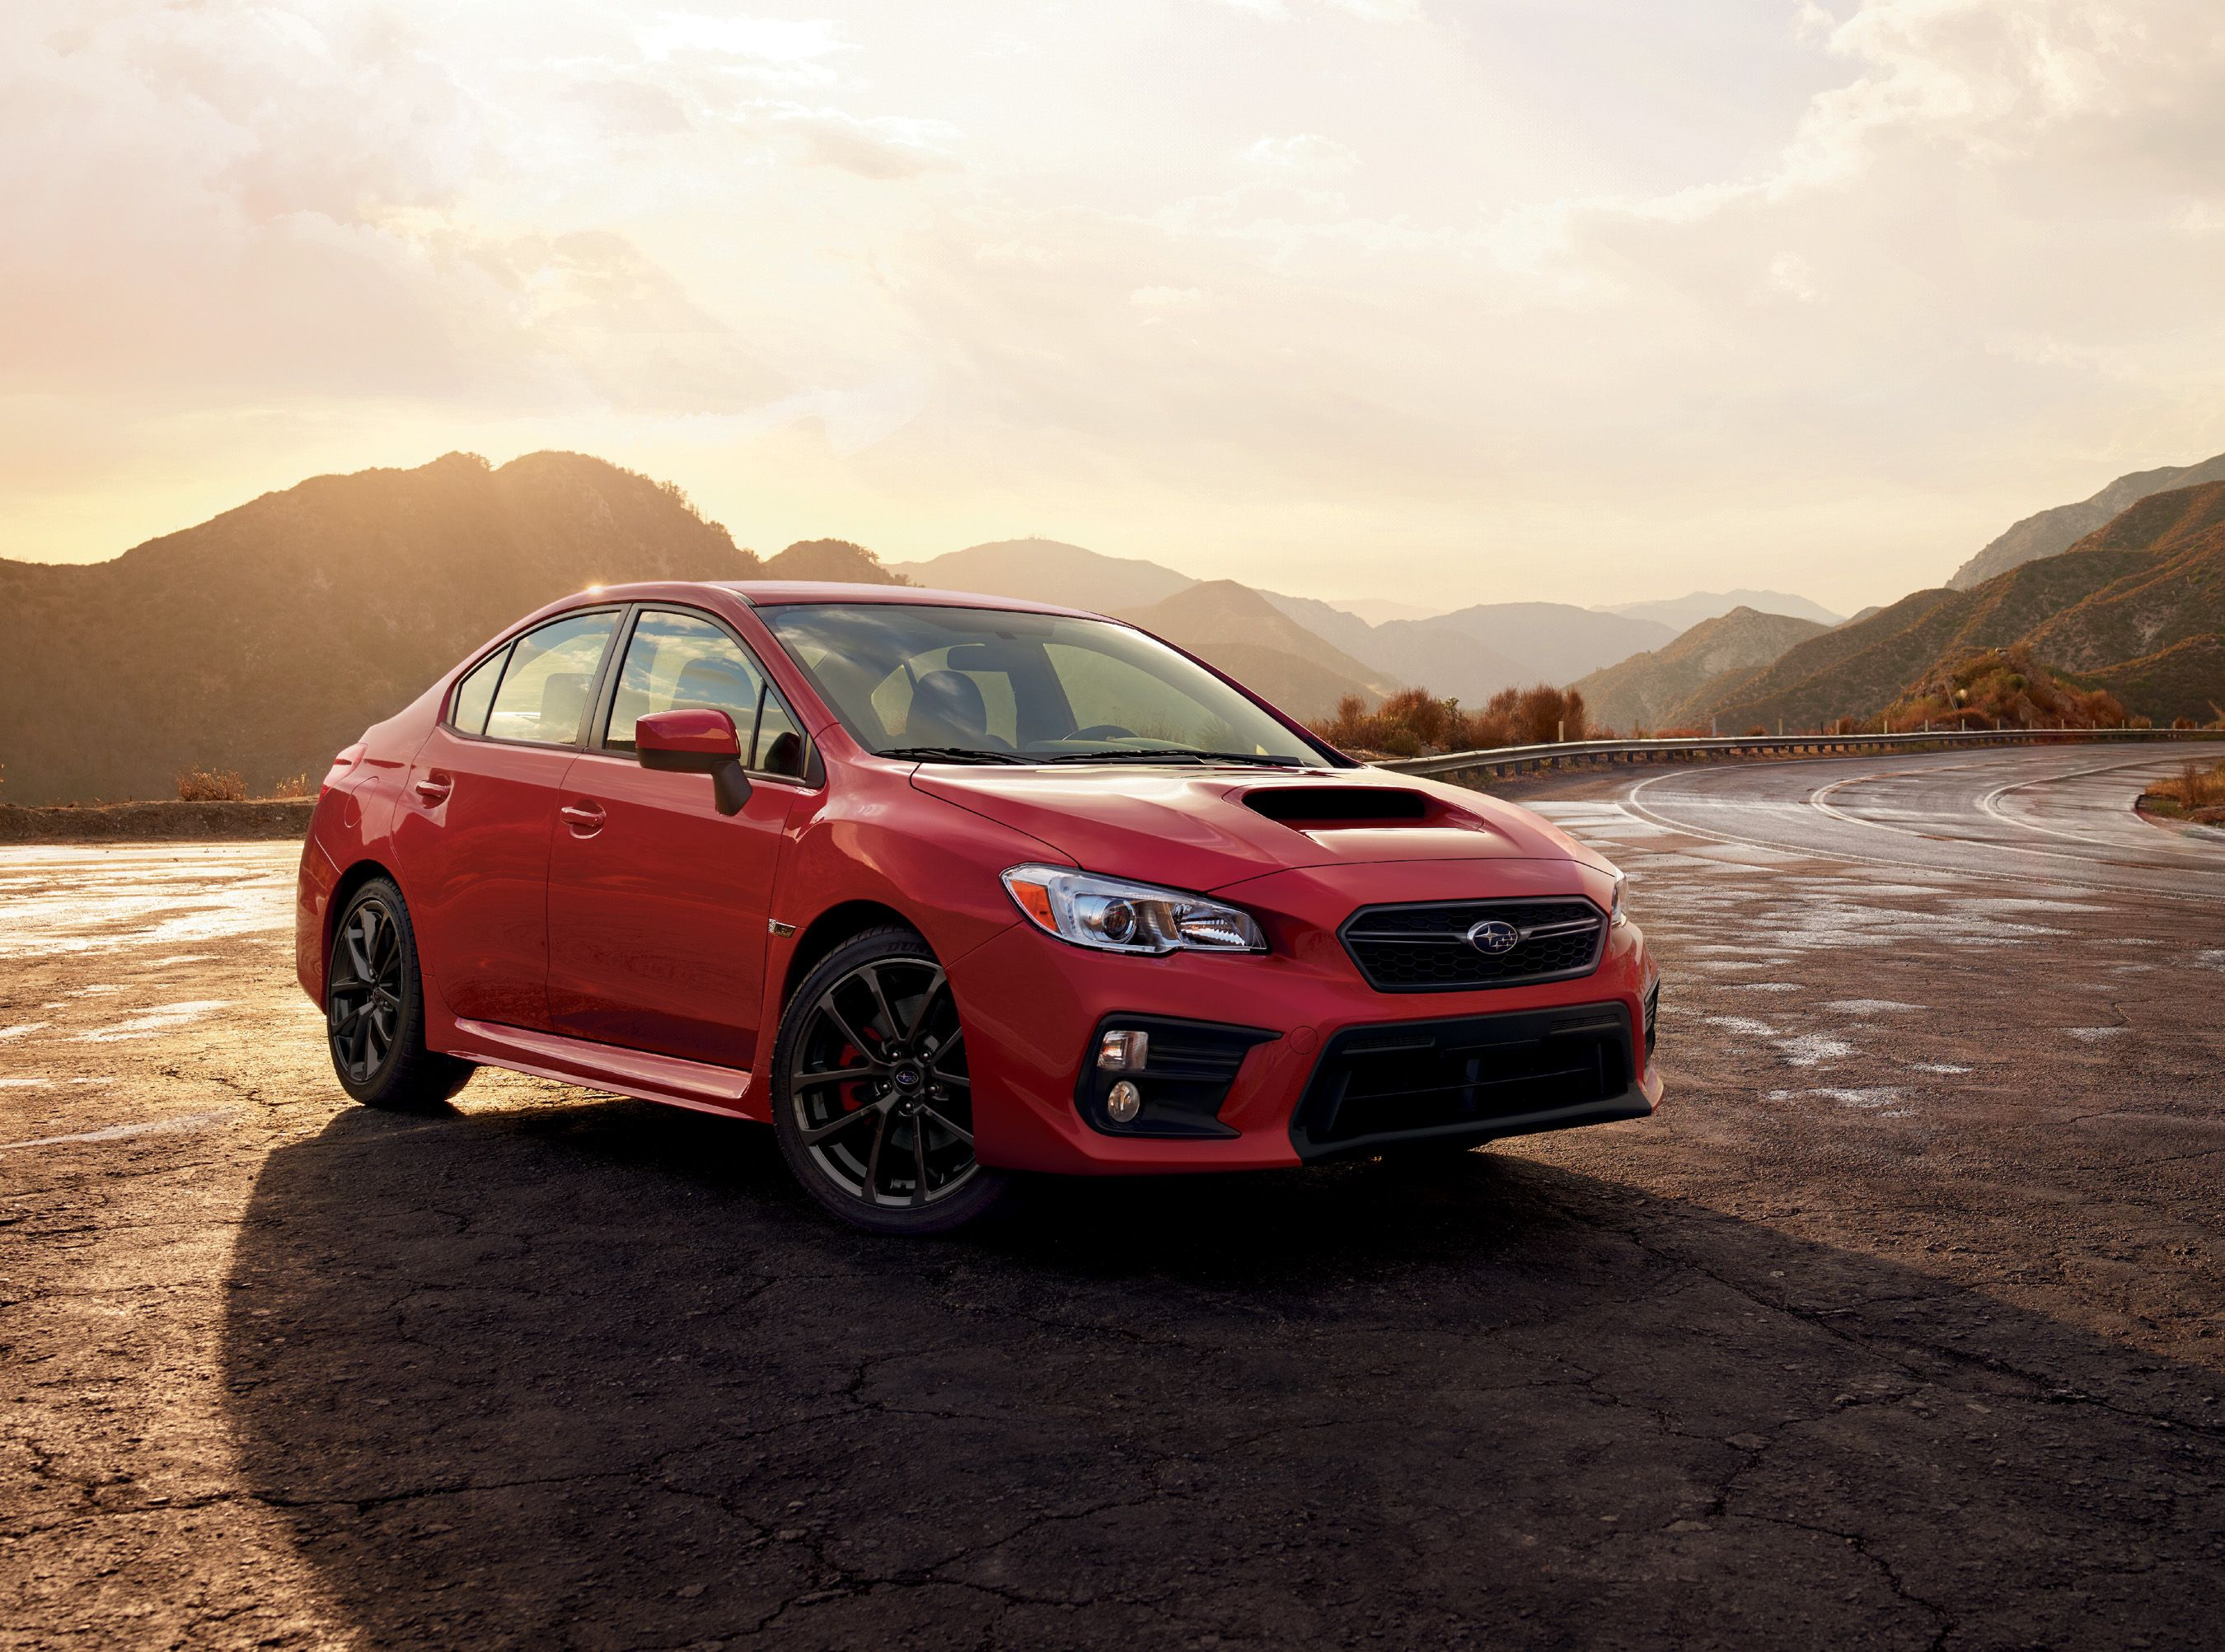 The 16 Fastest Cars You Can Buy for Less Than $30,000 in 2019 - Best